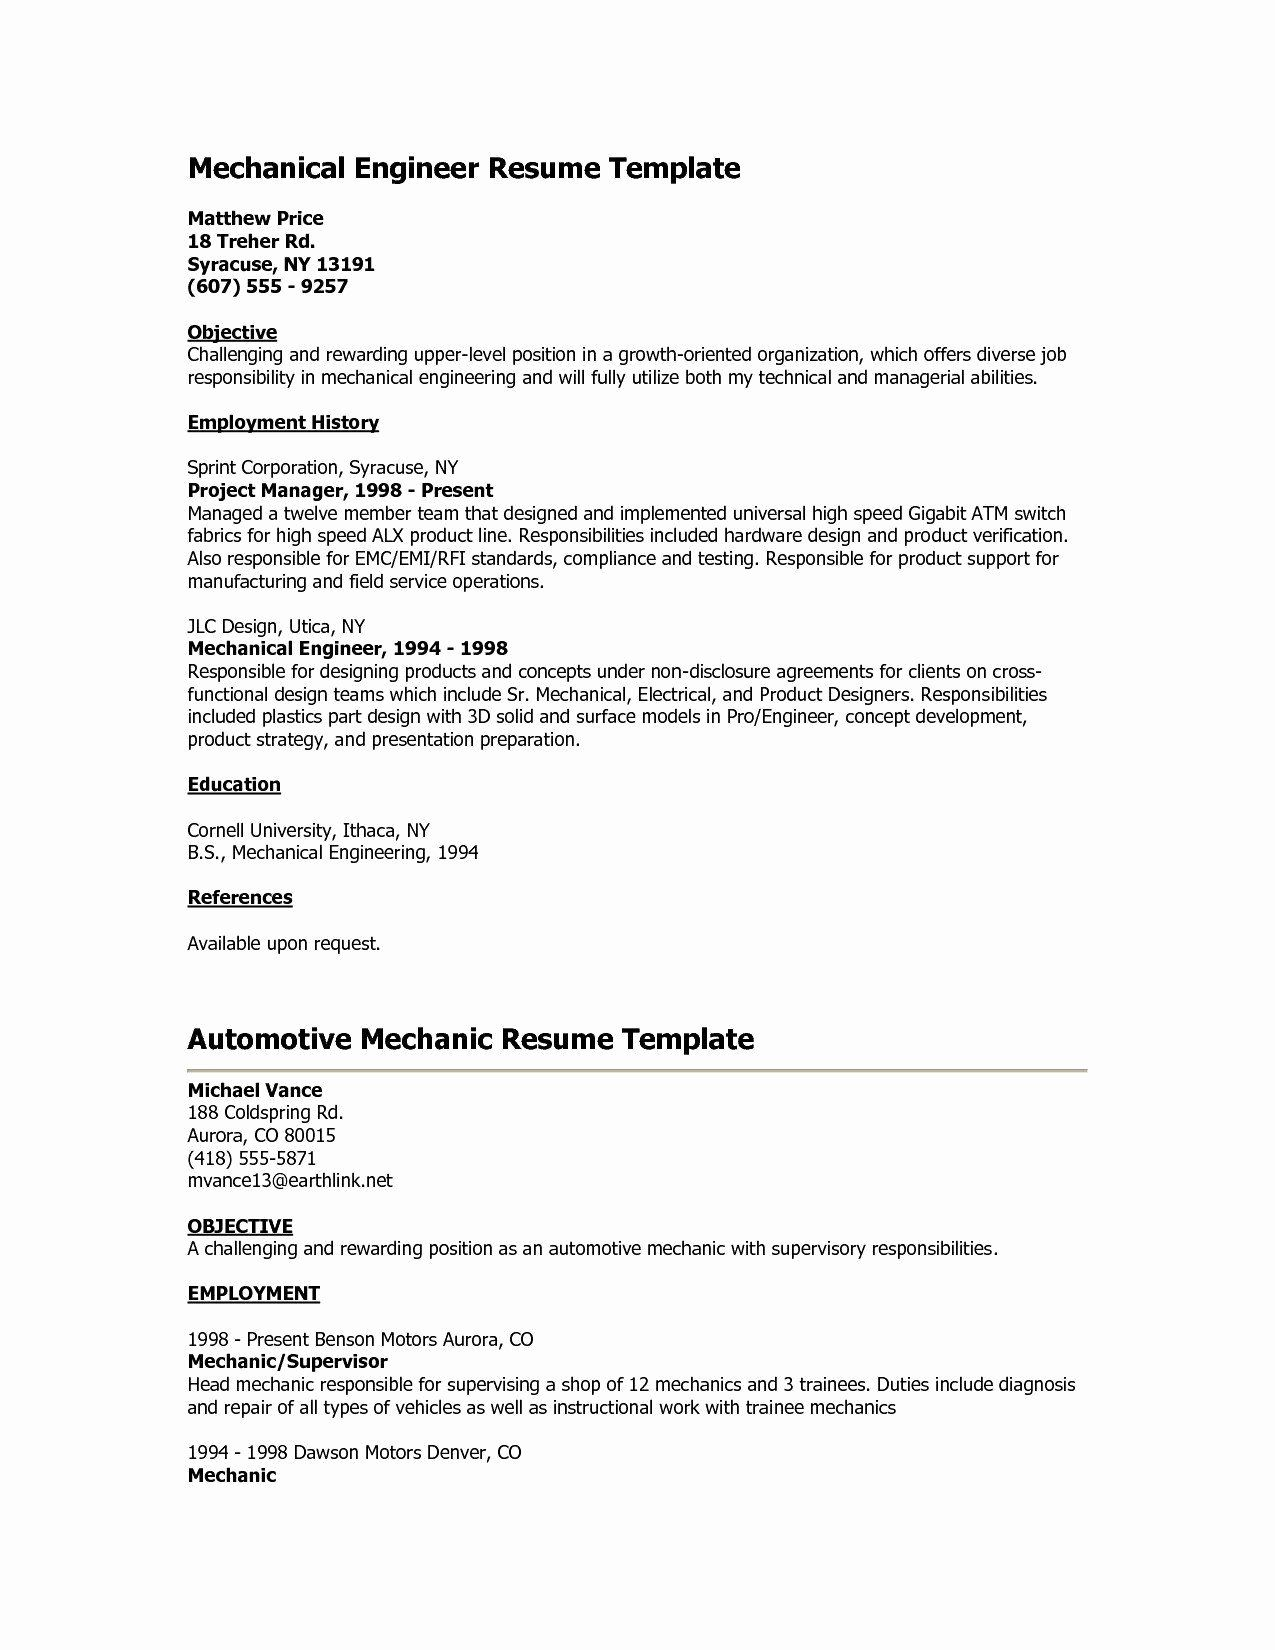 bank resume no experience printable template mechanical engineer engineering objective Resume Teller Resume Objective